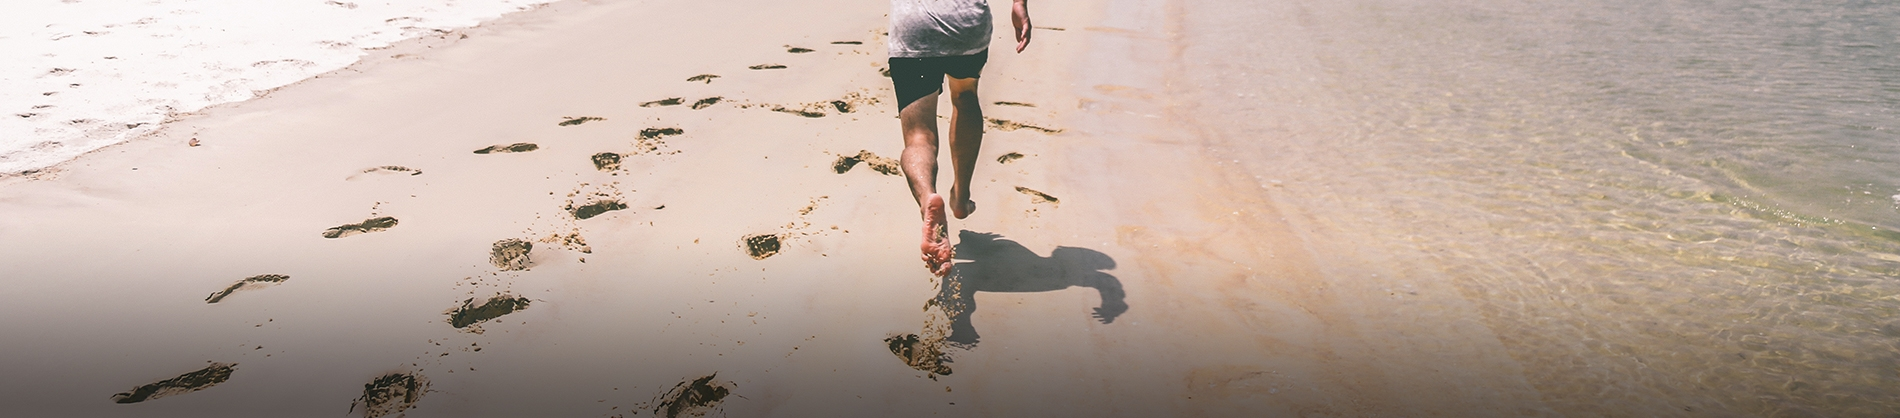 A man running along a beach